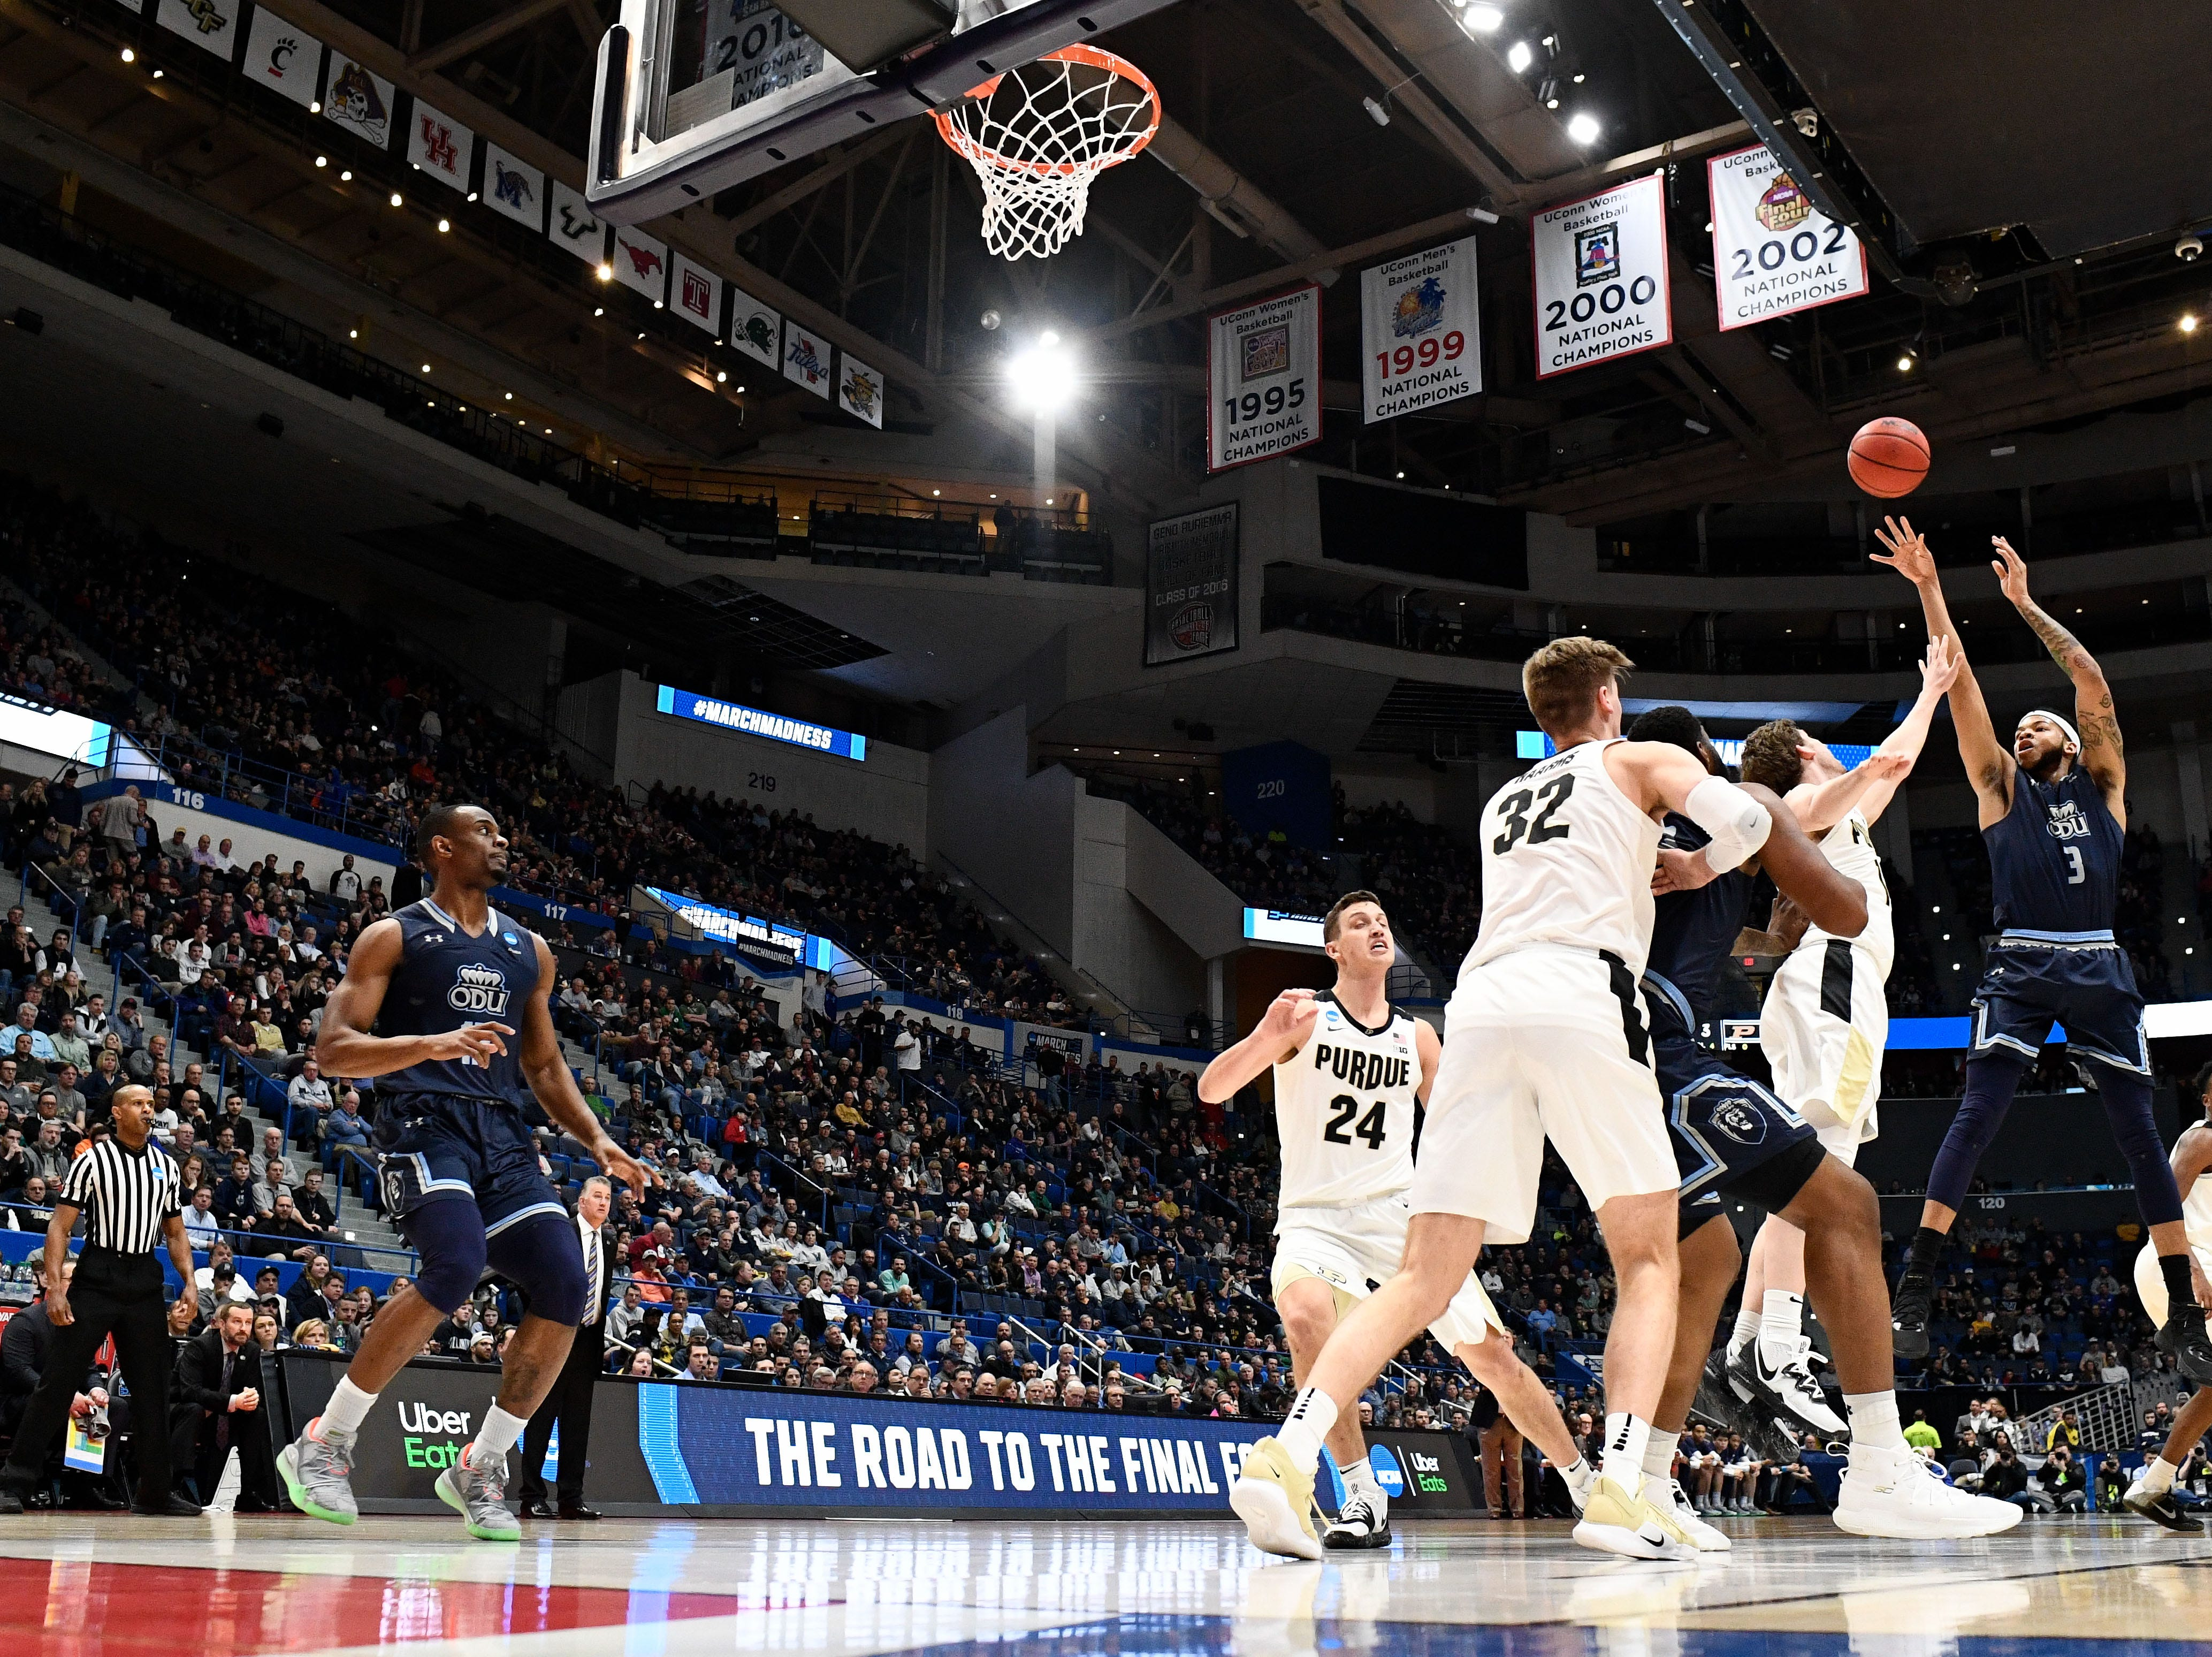 Old Dominion Monarchs guard B.J. Stith (3) attempts a shot against the Purdue Boilermakers during the first half of a game in the first round of the 2019 NCAA Tournament at XL Center.